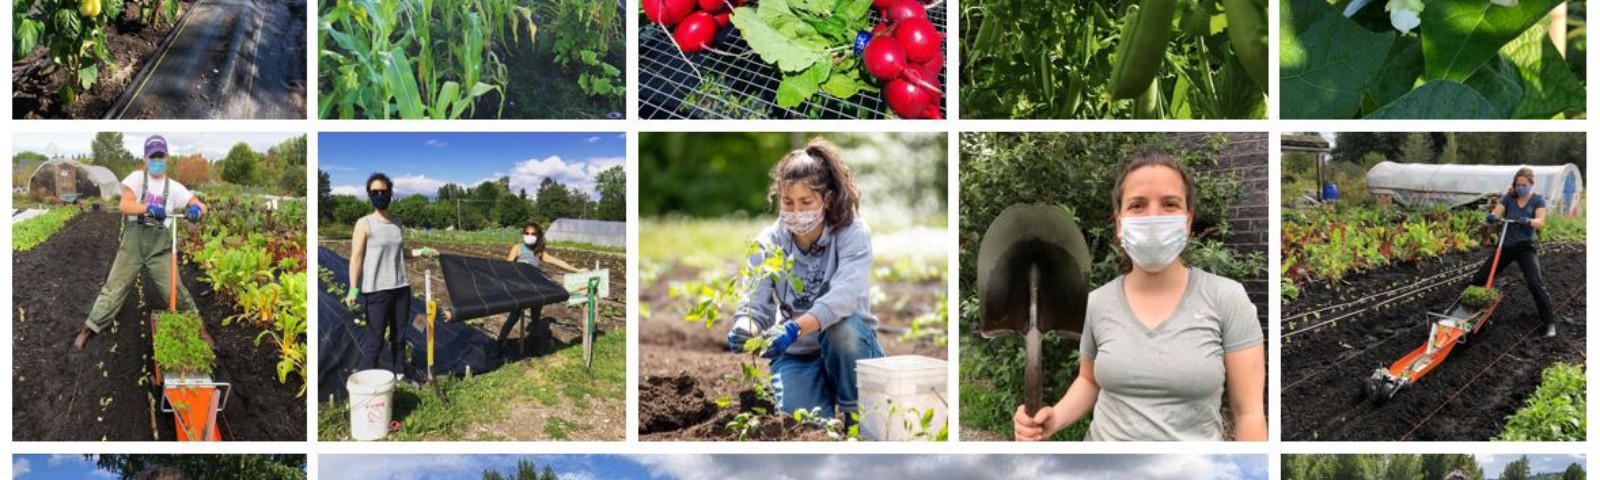 Collage of students volunteering in the UW Farm garden during COVID-19.